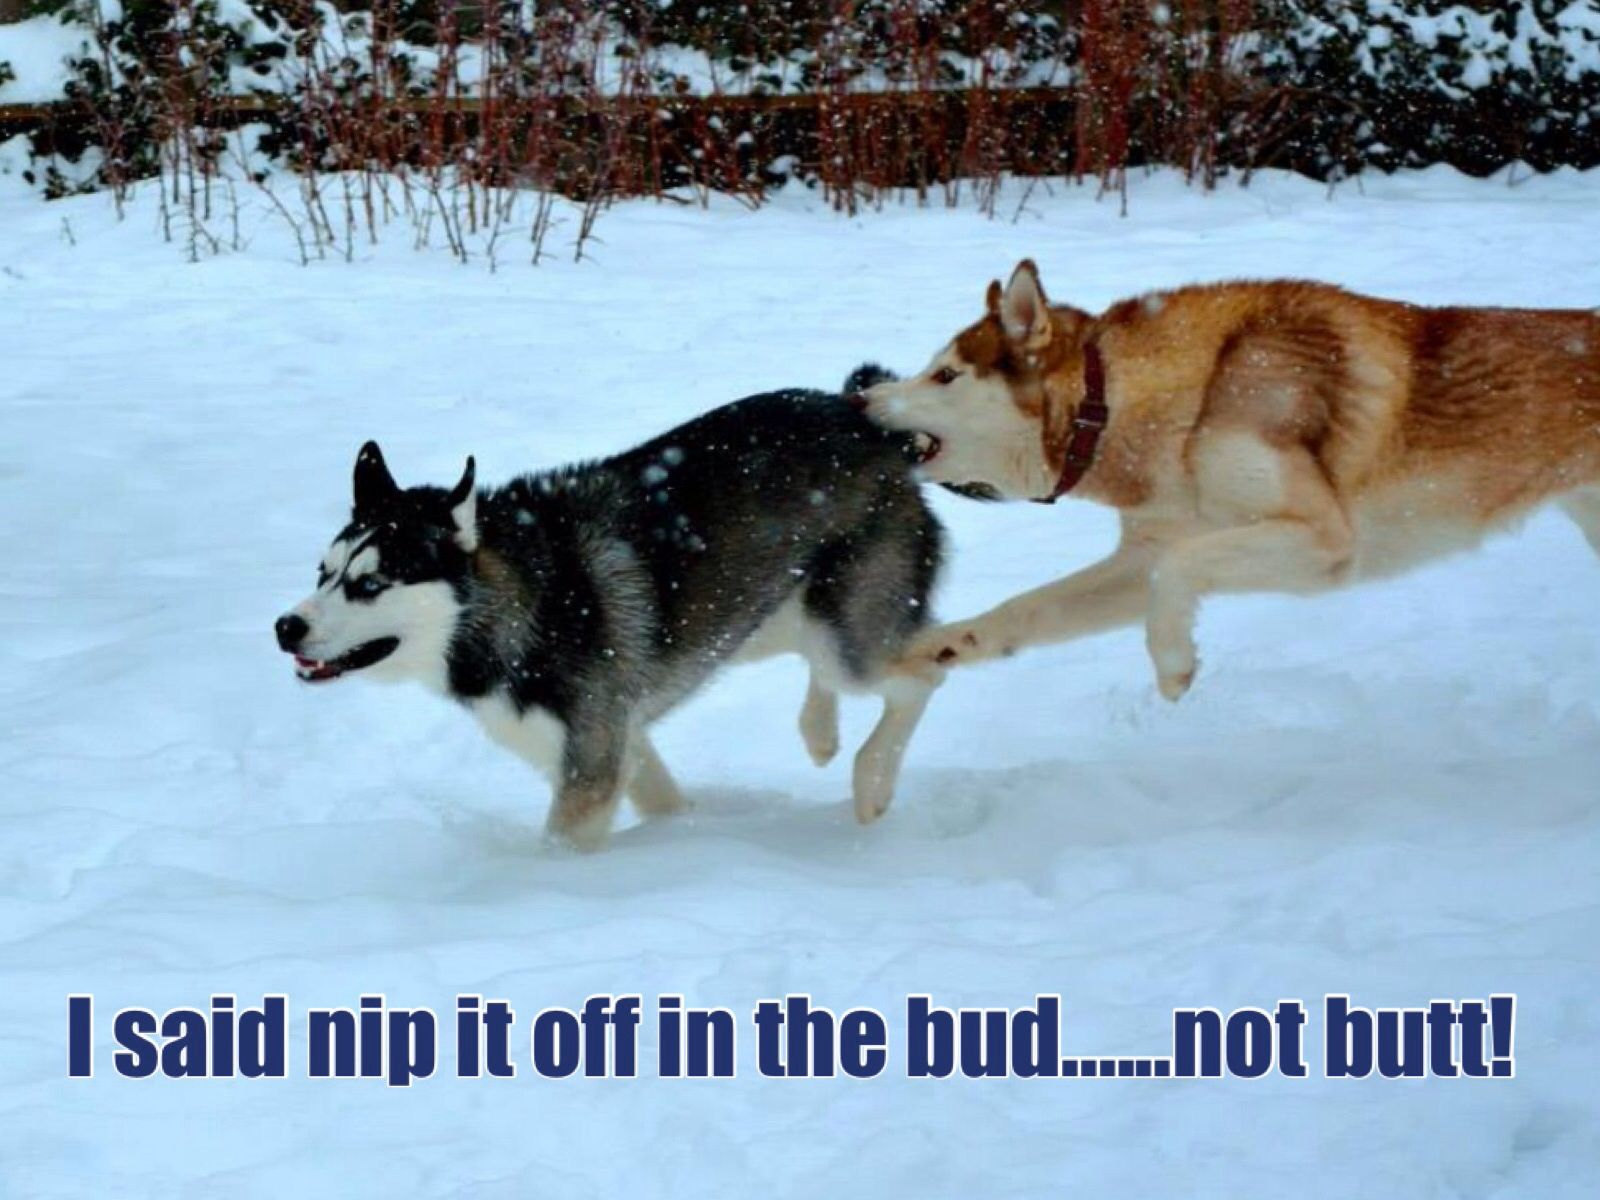 dogs chasing through the - photo #13